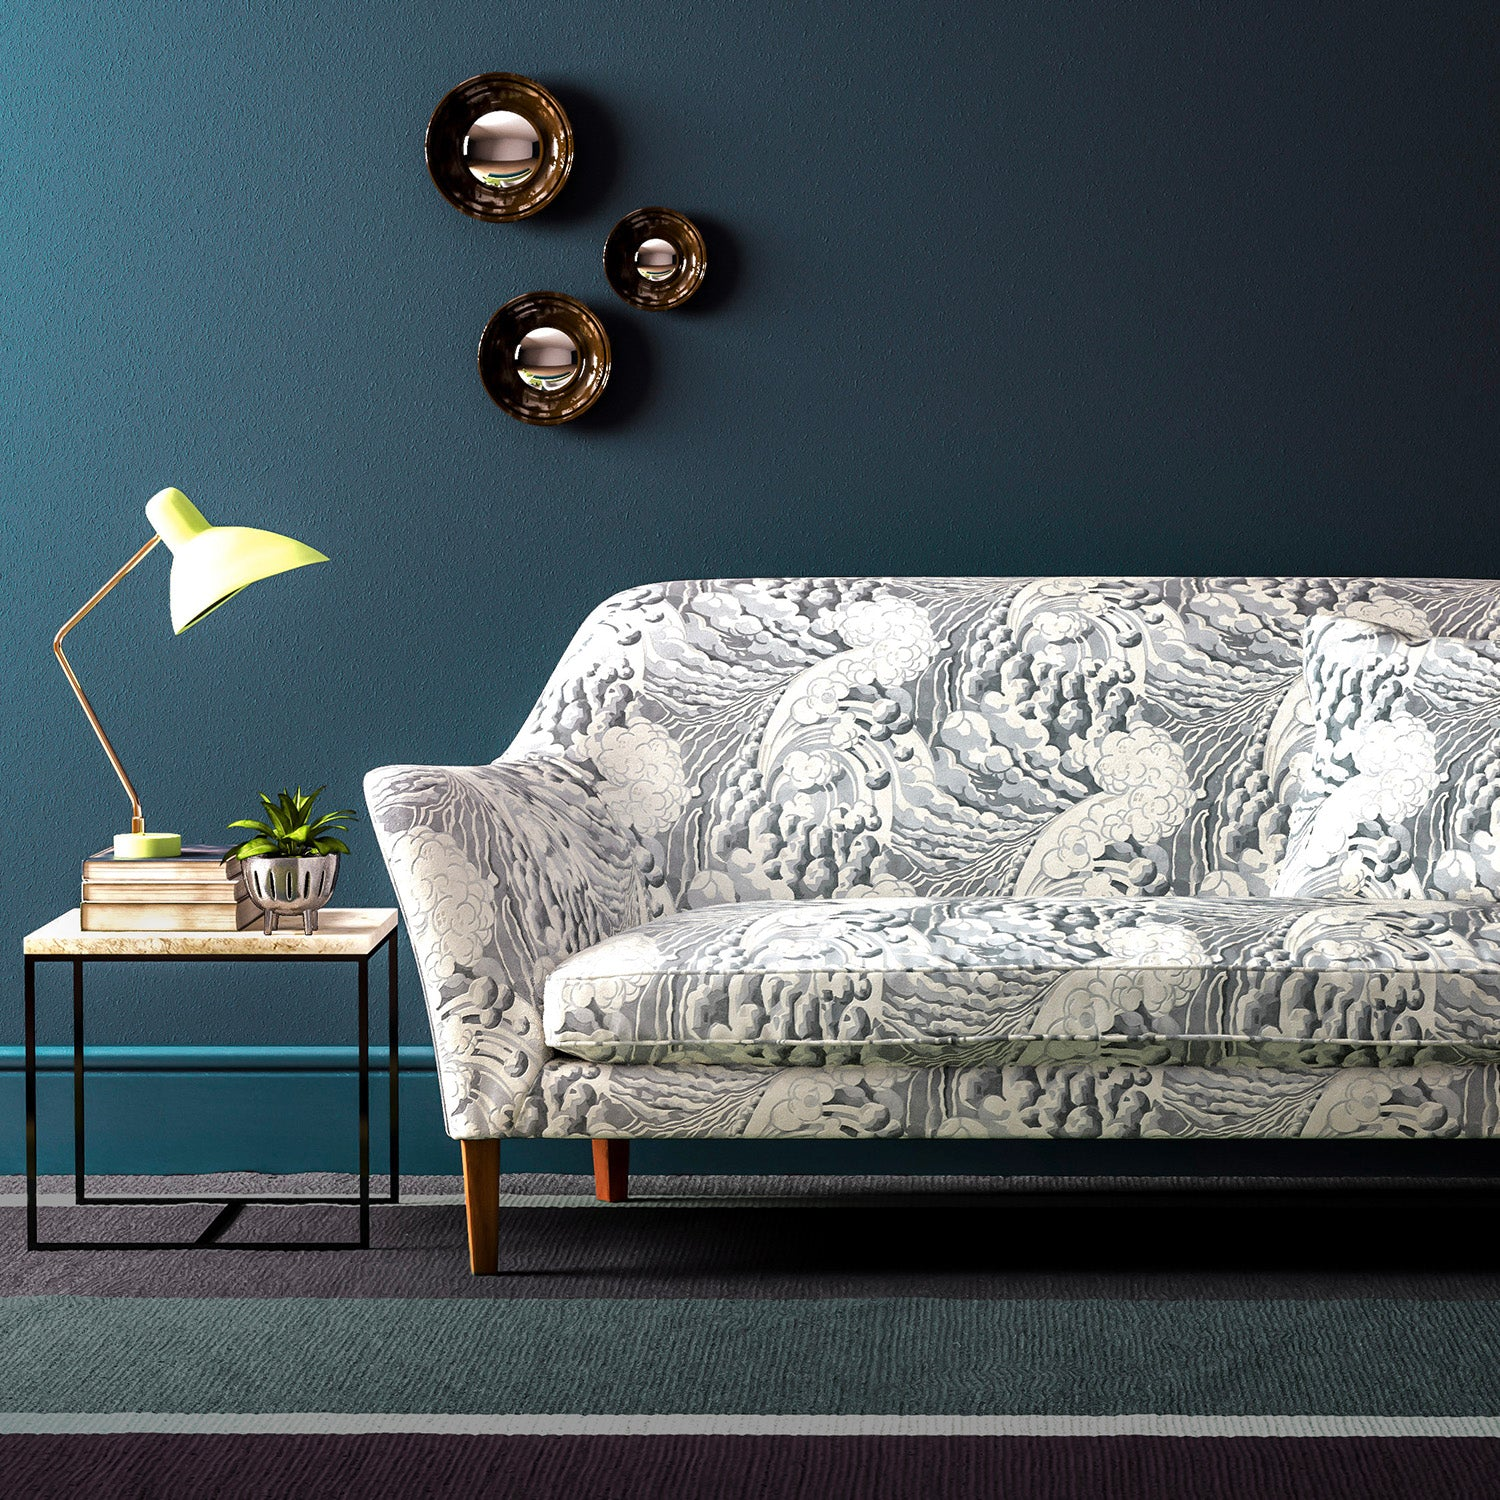 Velvet sofa upholstered in a grey and white velvet upholstery fabric with a wave design and stain resistant finish